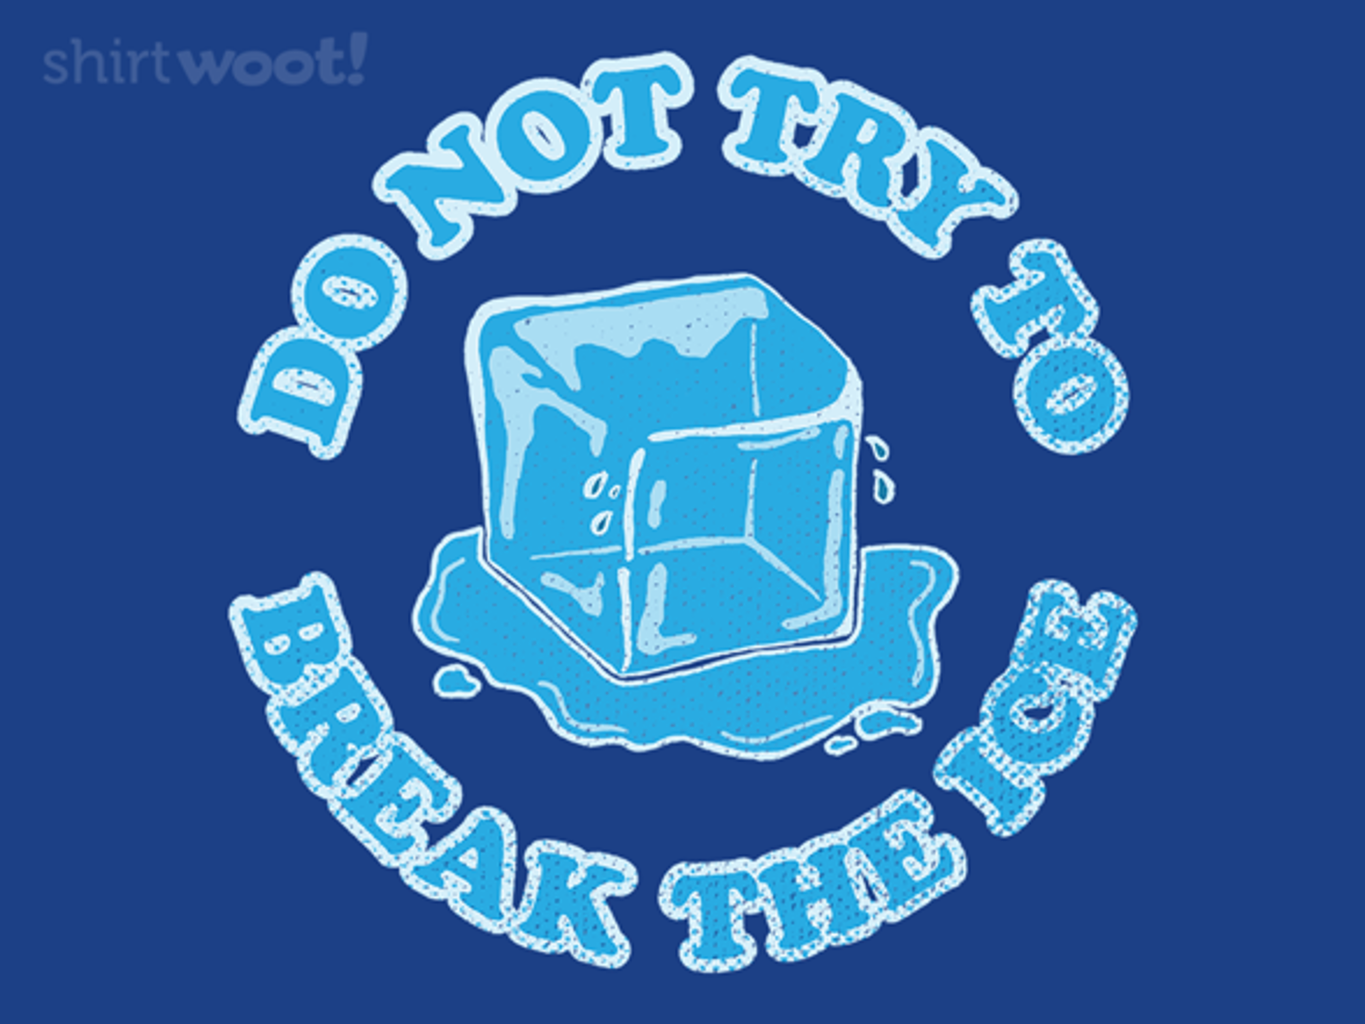 Woot!: Ice Cold - $15.00 + Free shipping